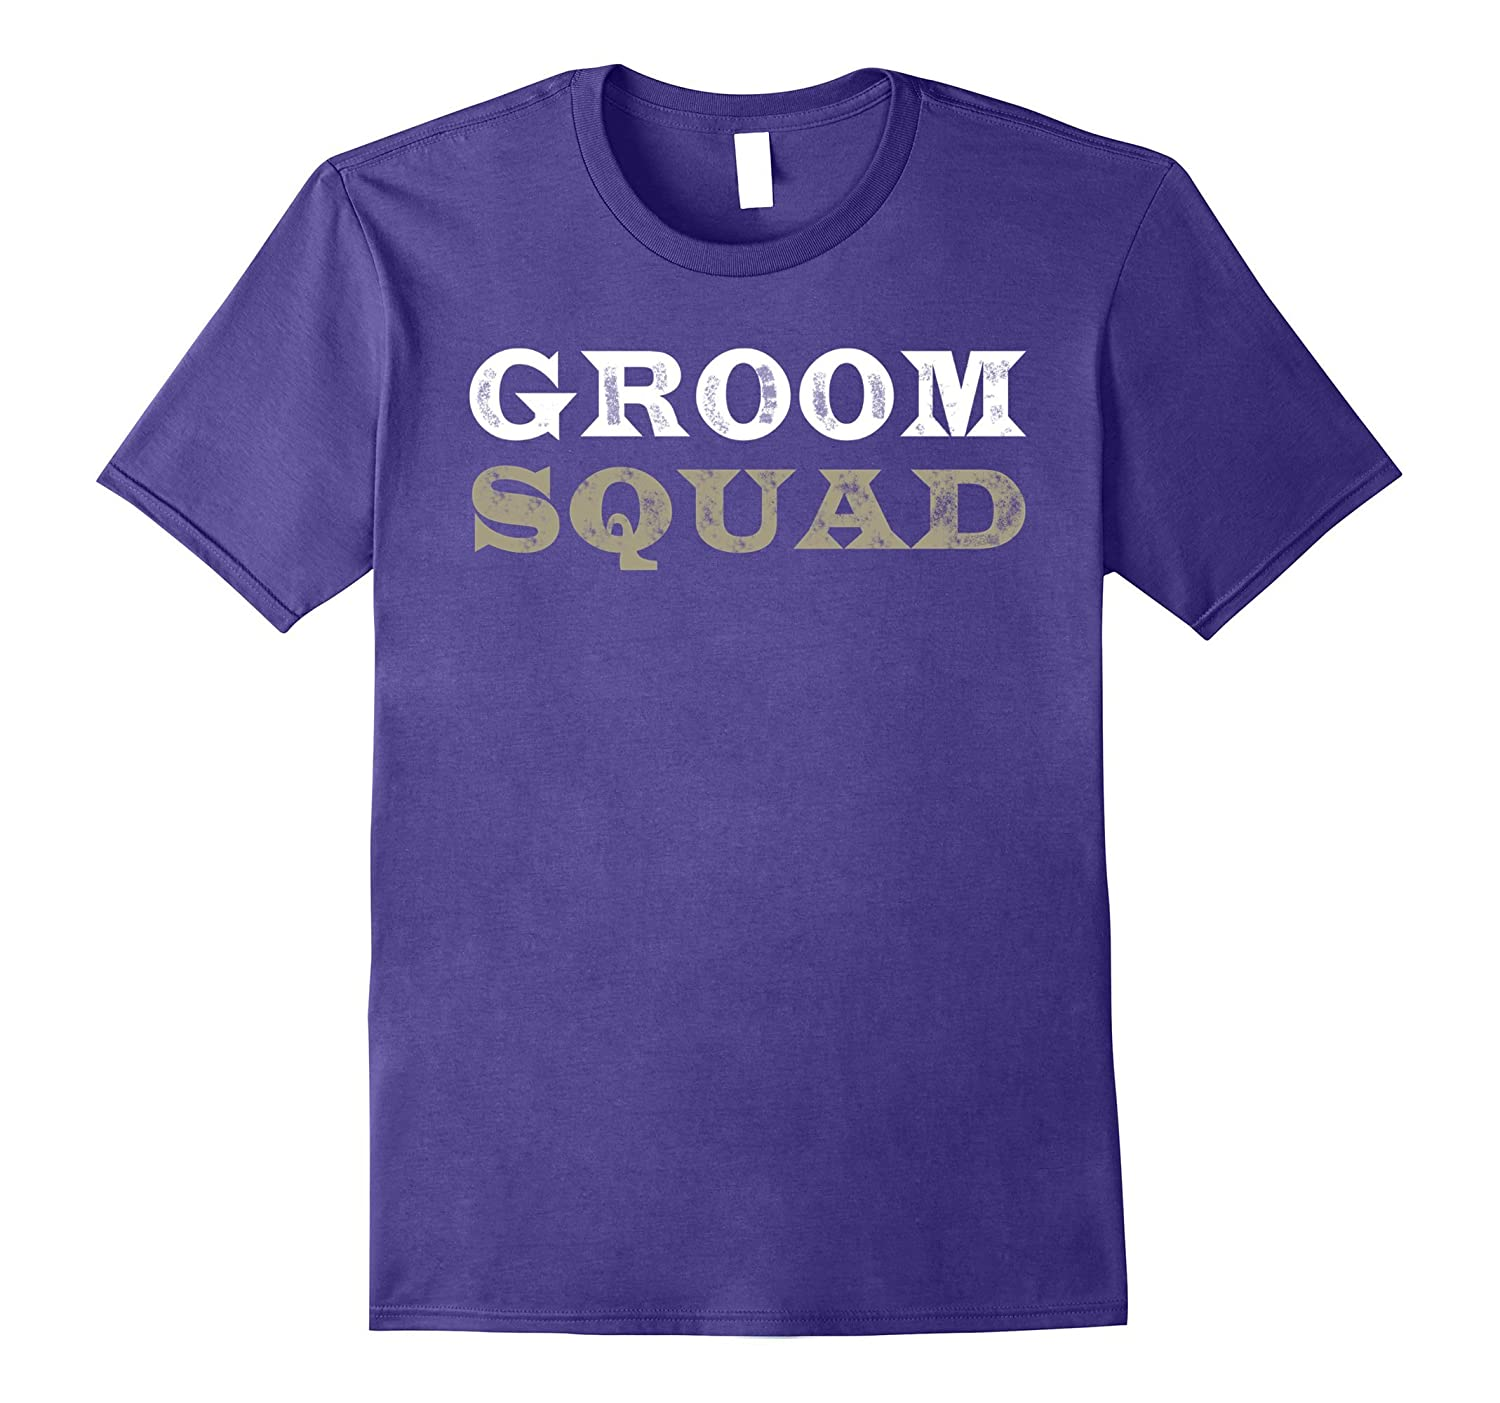 Groom Squad T-shirt Wedding Party Shirt Gift Dating-Vaci